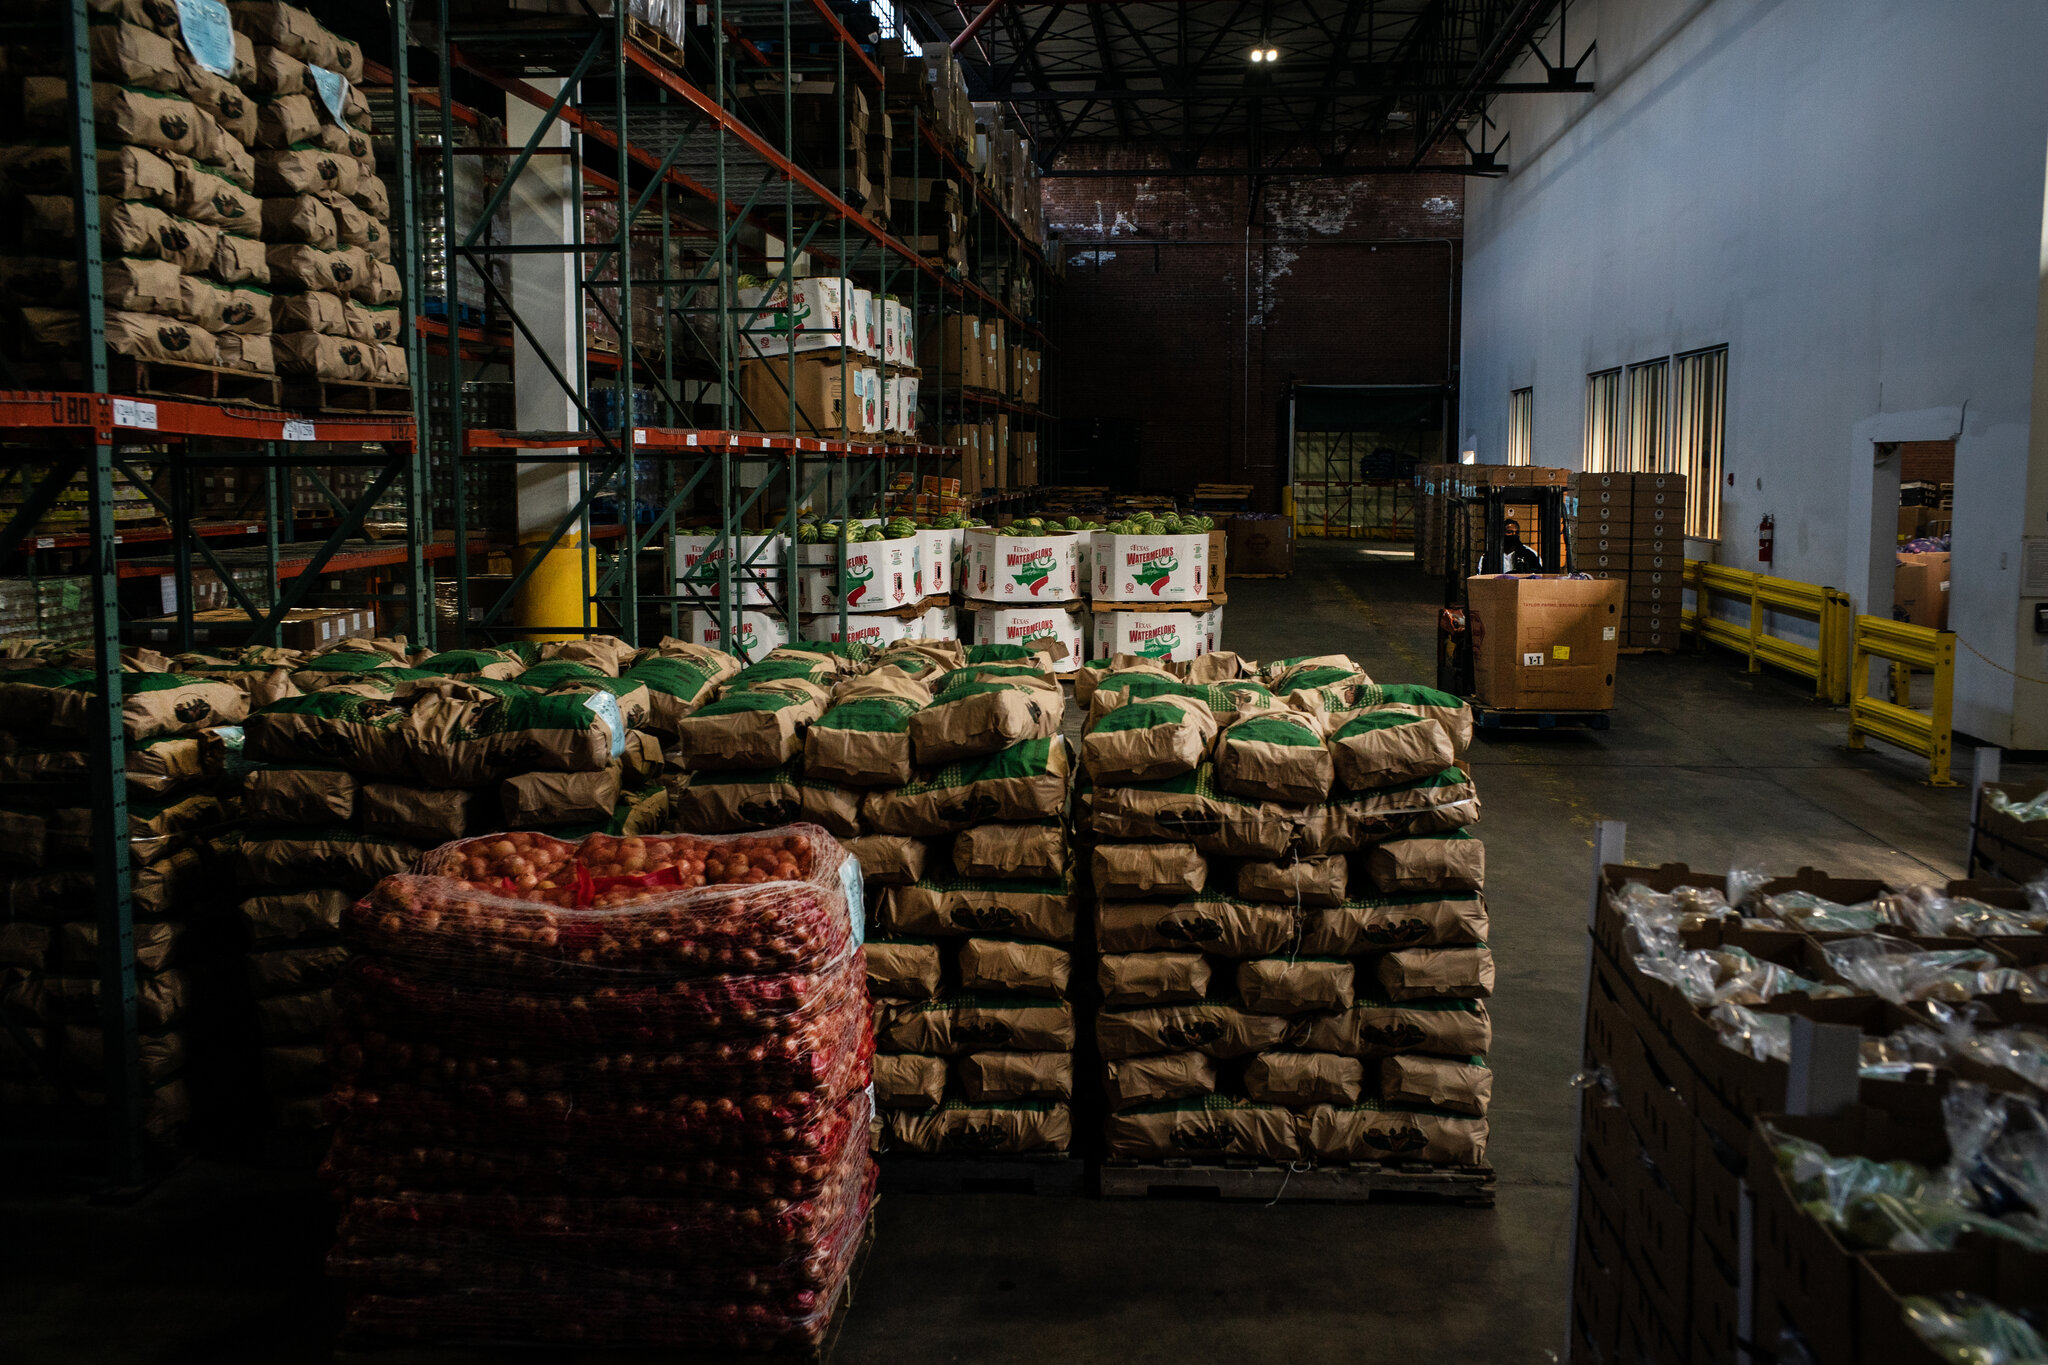 Warehouse of food that soon will be delivered to Masbia Soup Kitchen Network, and other non-profit organizations, to be shared with people in the needy.